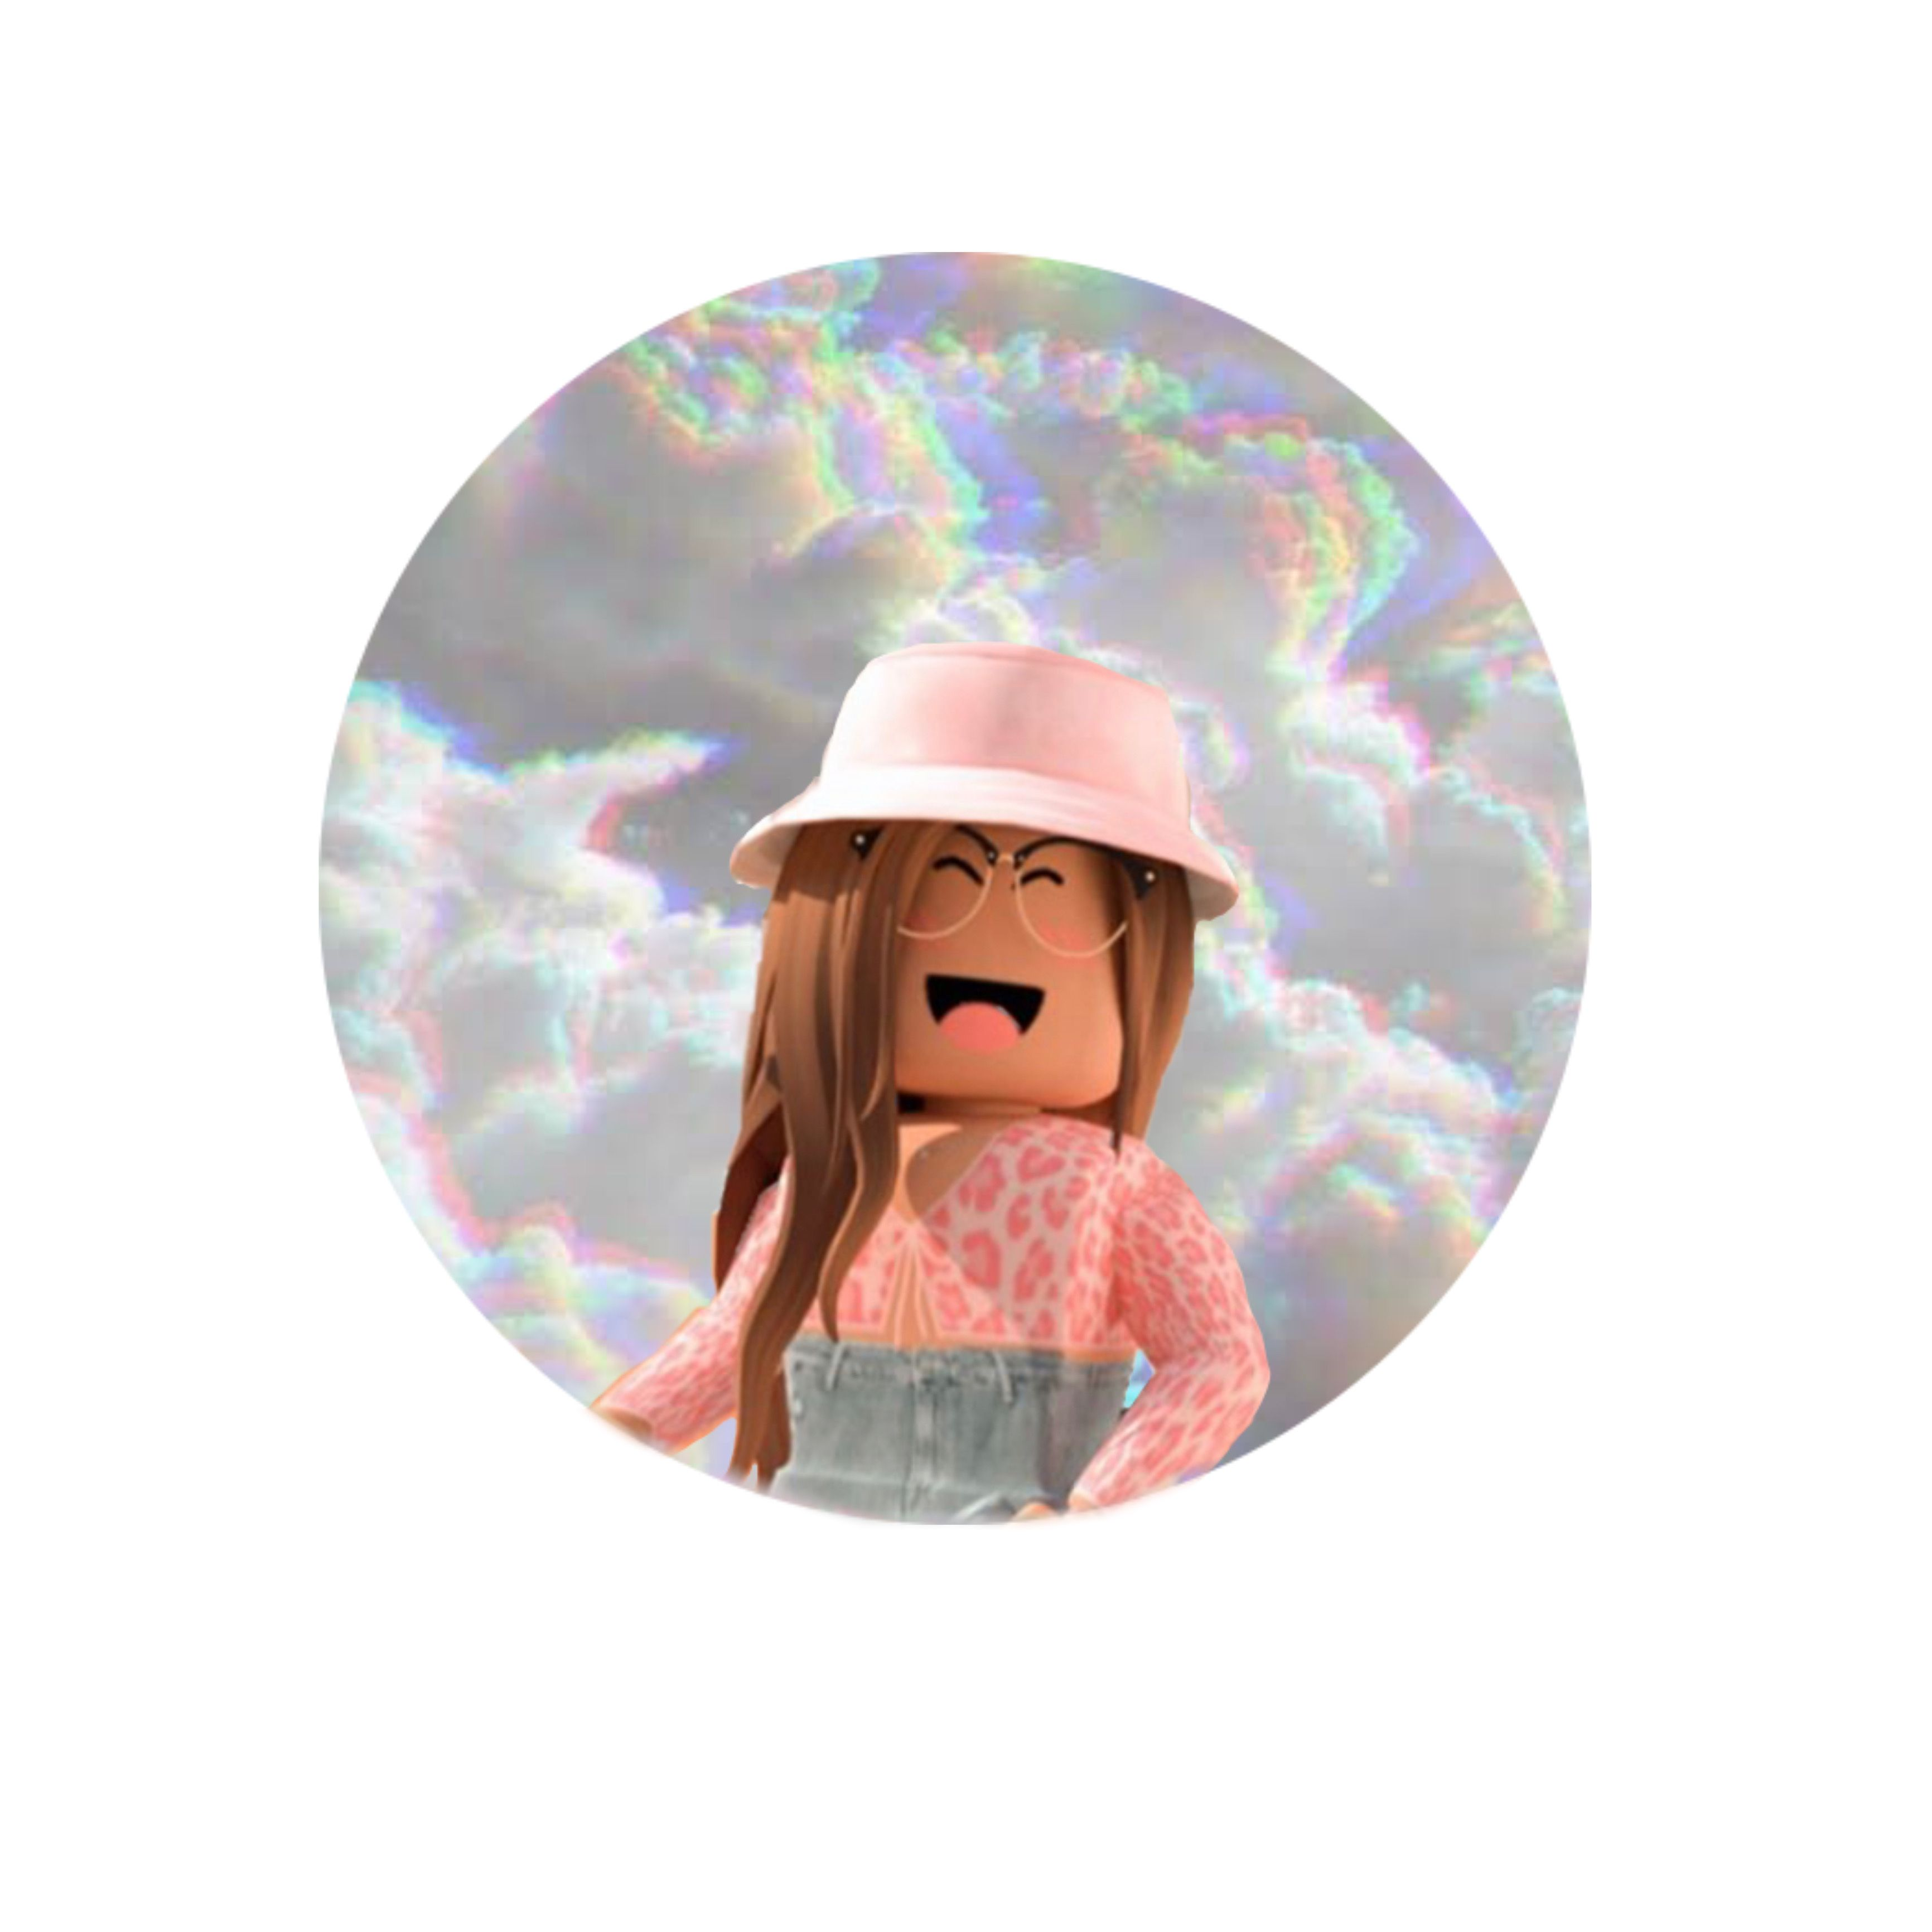 Pin By Ijeoma H On Cute Roblox Pics In 2020 Roblox Animation Cute Tumblr Wallpaper Roblox Pictures